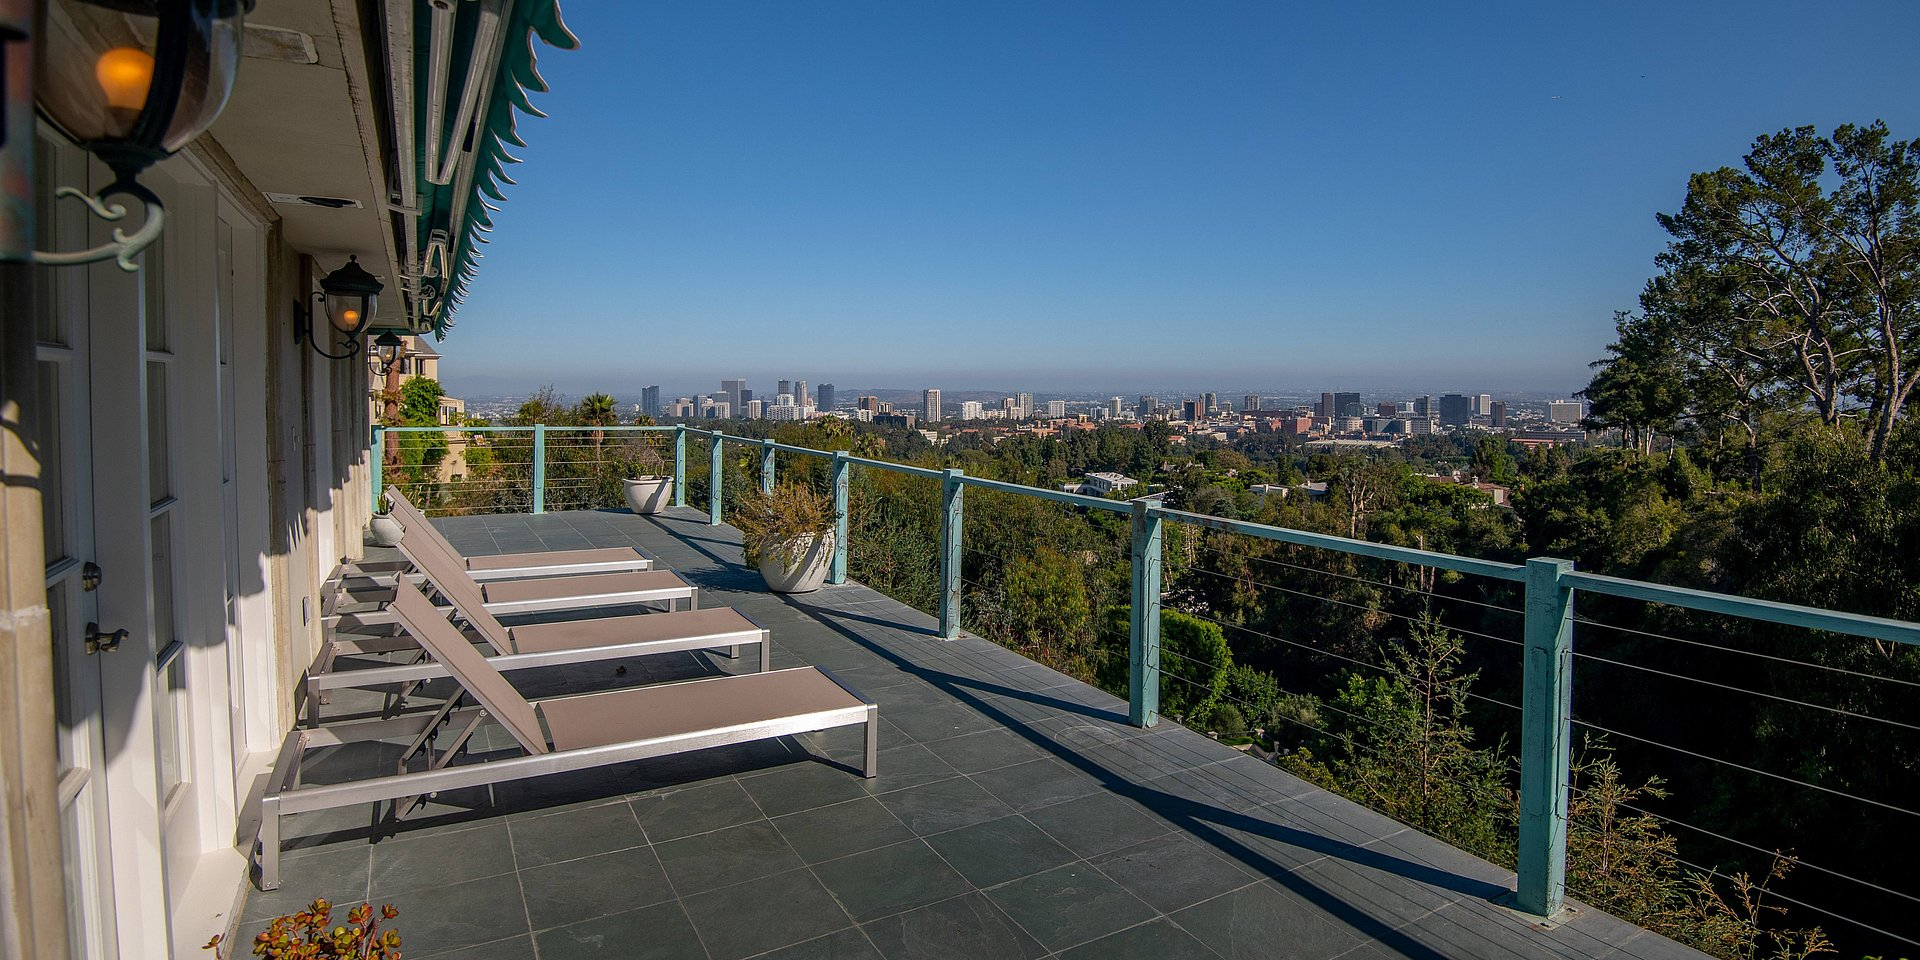 Coldwell Banker Residential Brokerage Lists Bel Air Property for $13.995 Million